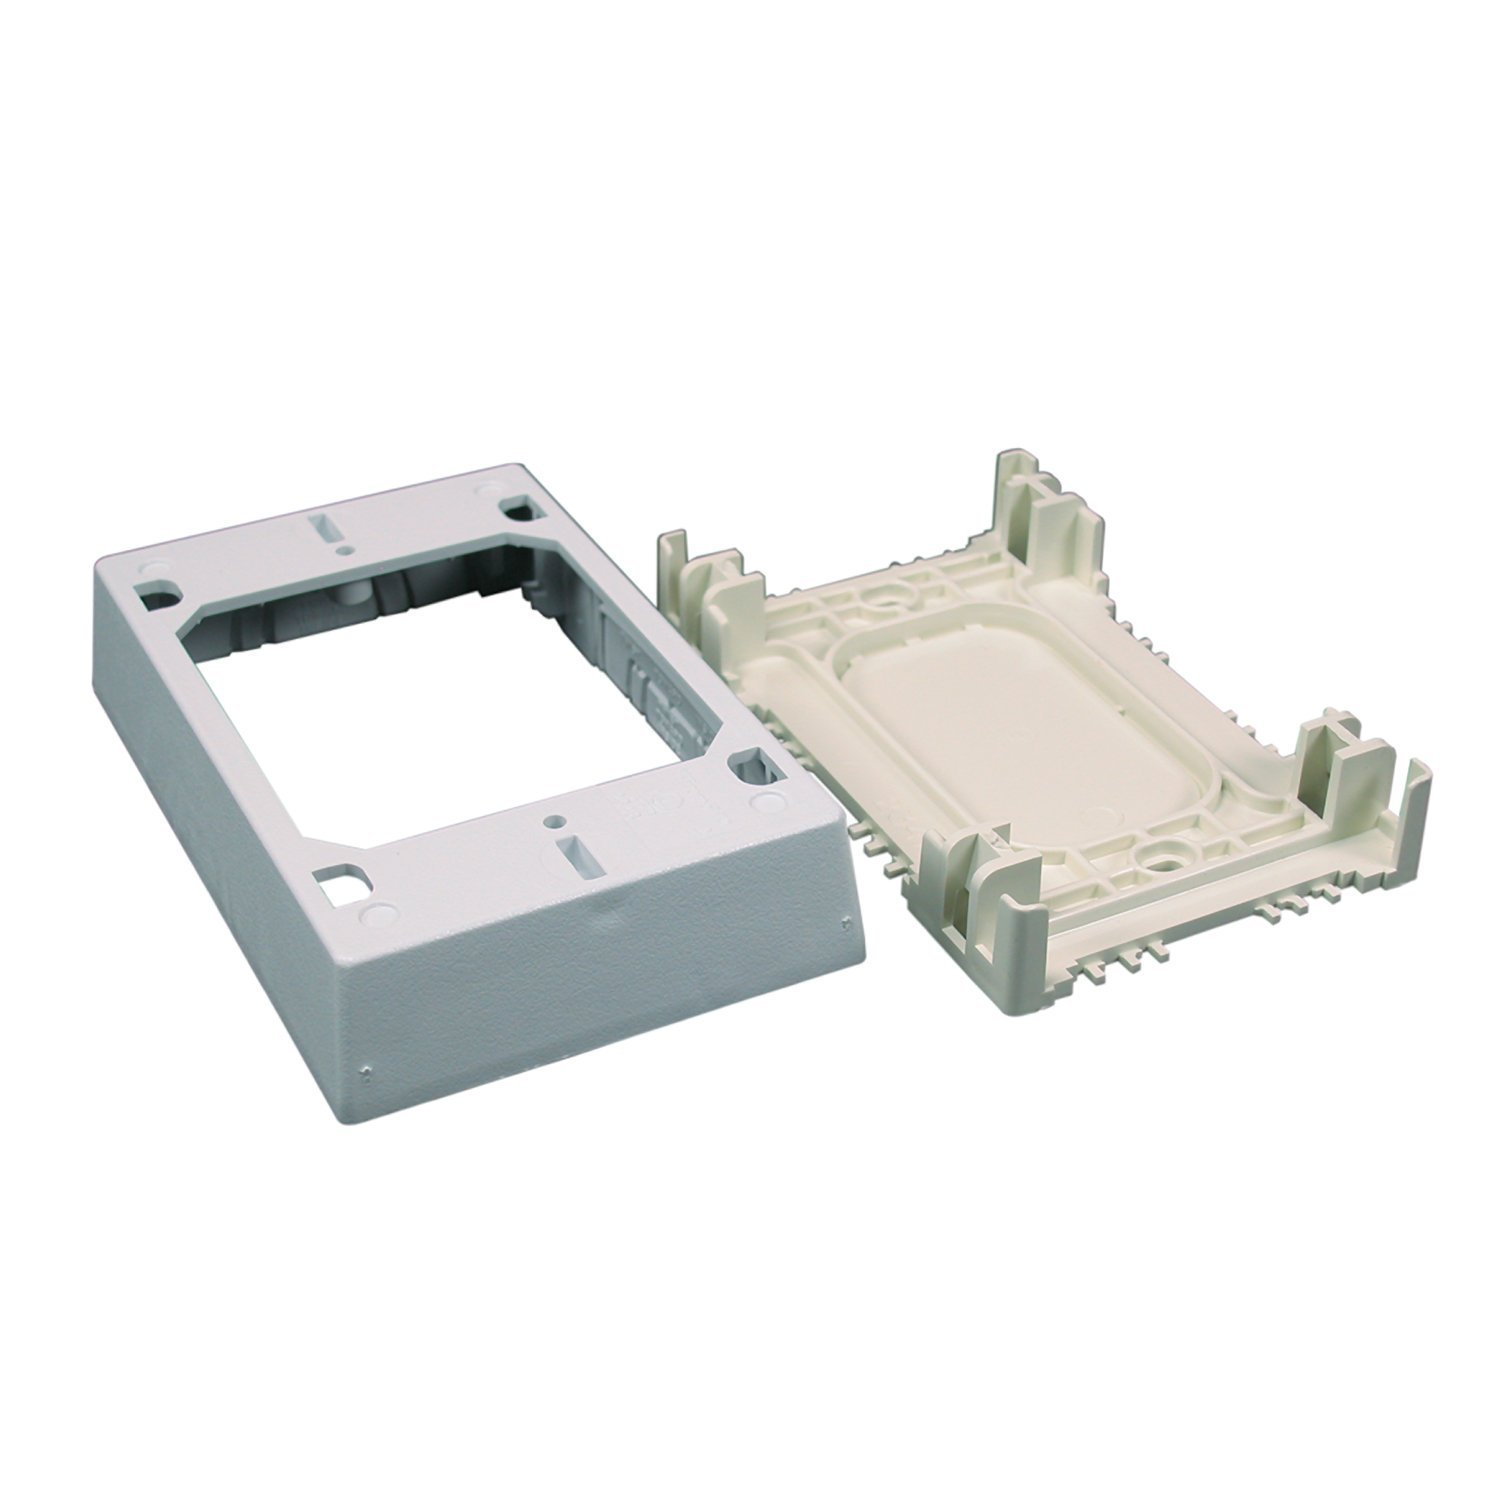 Wiremold NMW35 Nonmetallic Raceway Extra Deep Outlet Box Wiremold//Legrand 554448 Legrand